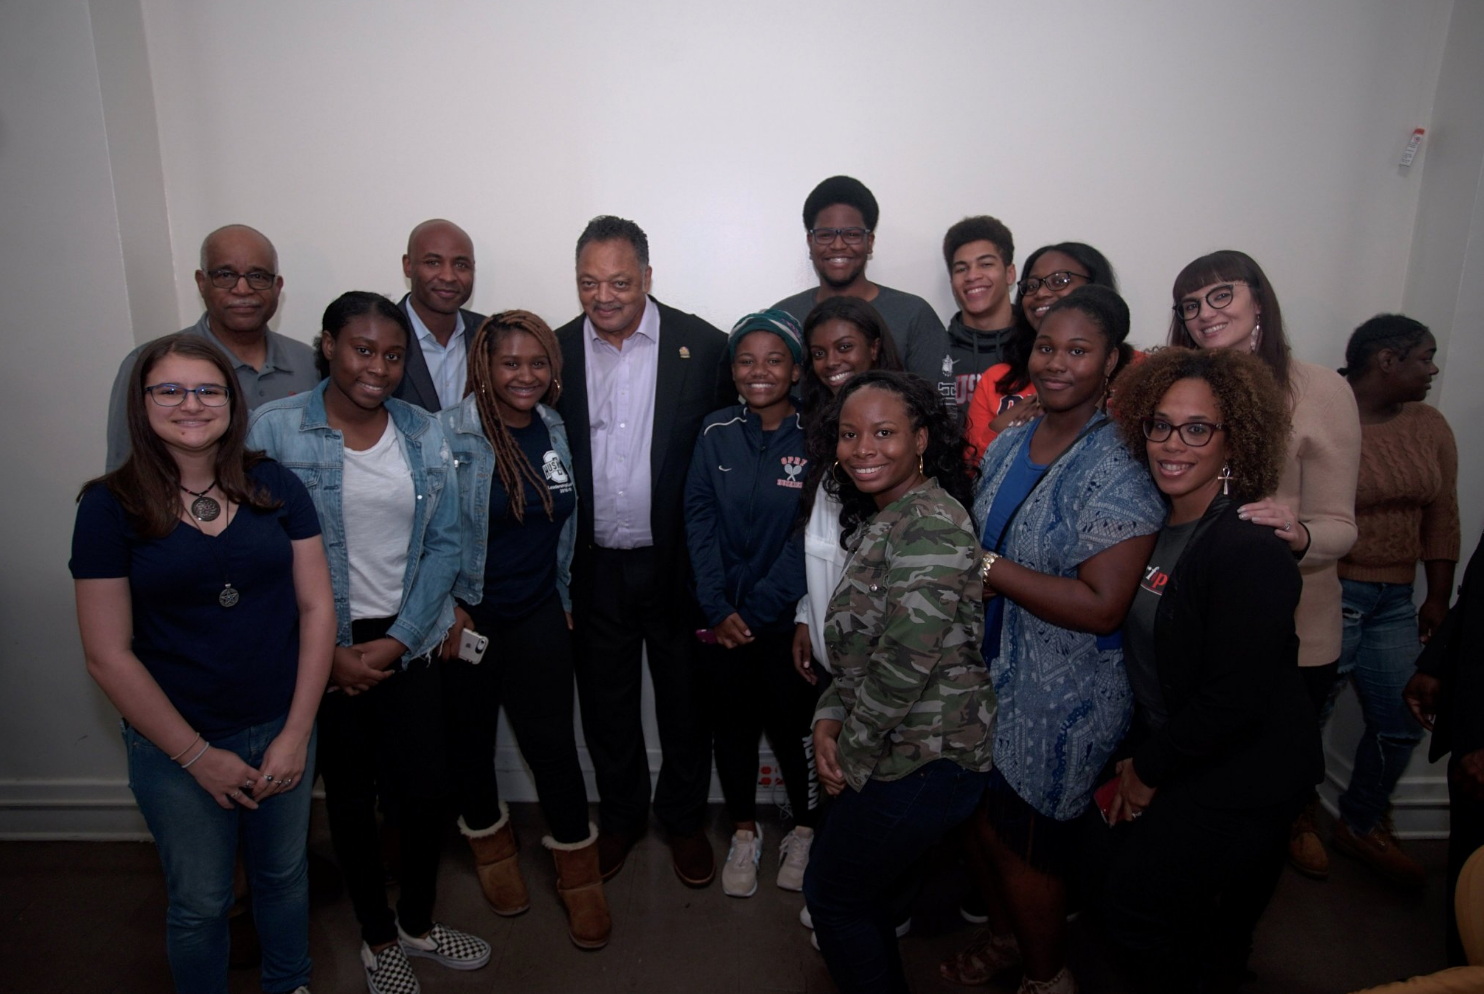 OPRF Principal and OPRF Students Advocating for Equity (SAFE) attend a voter registration rally with activist Jesse Jackson last fall.